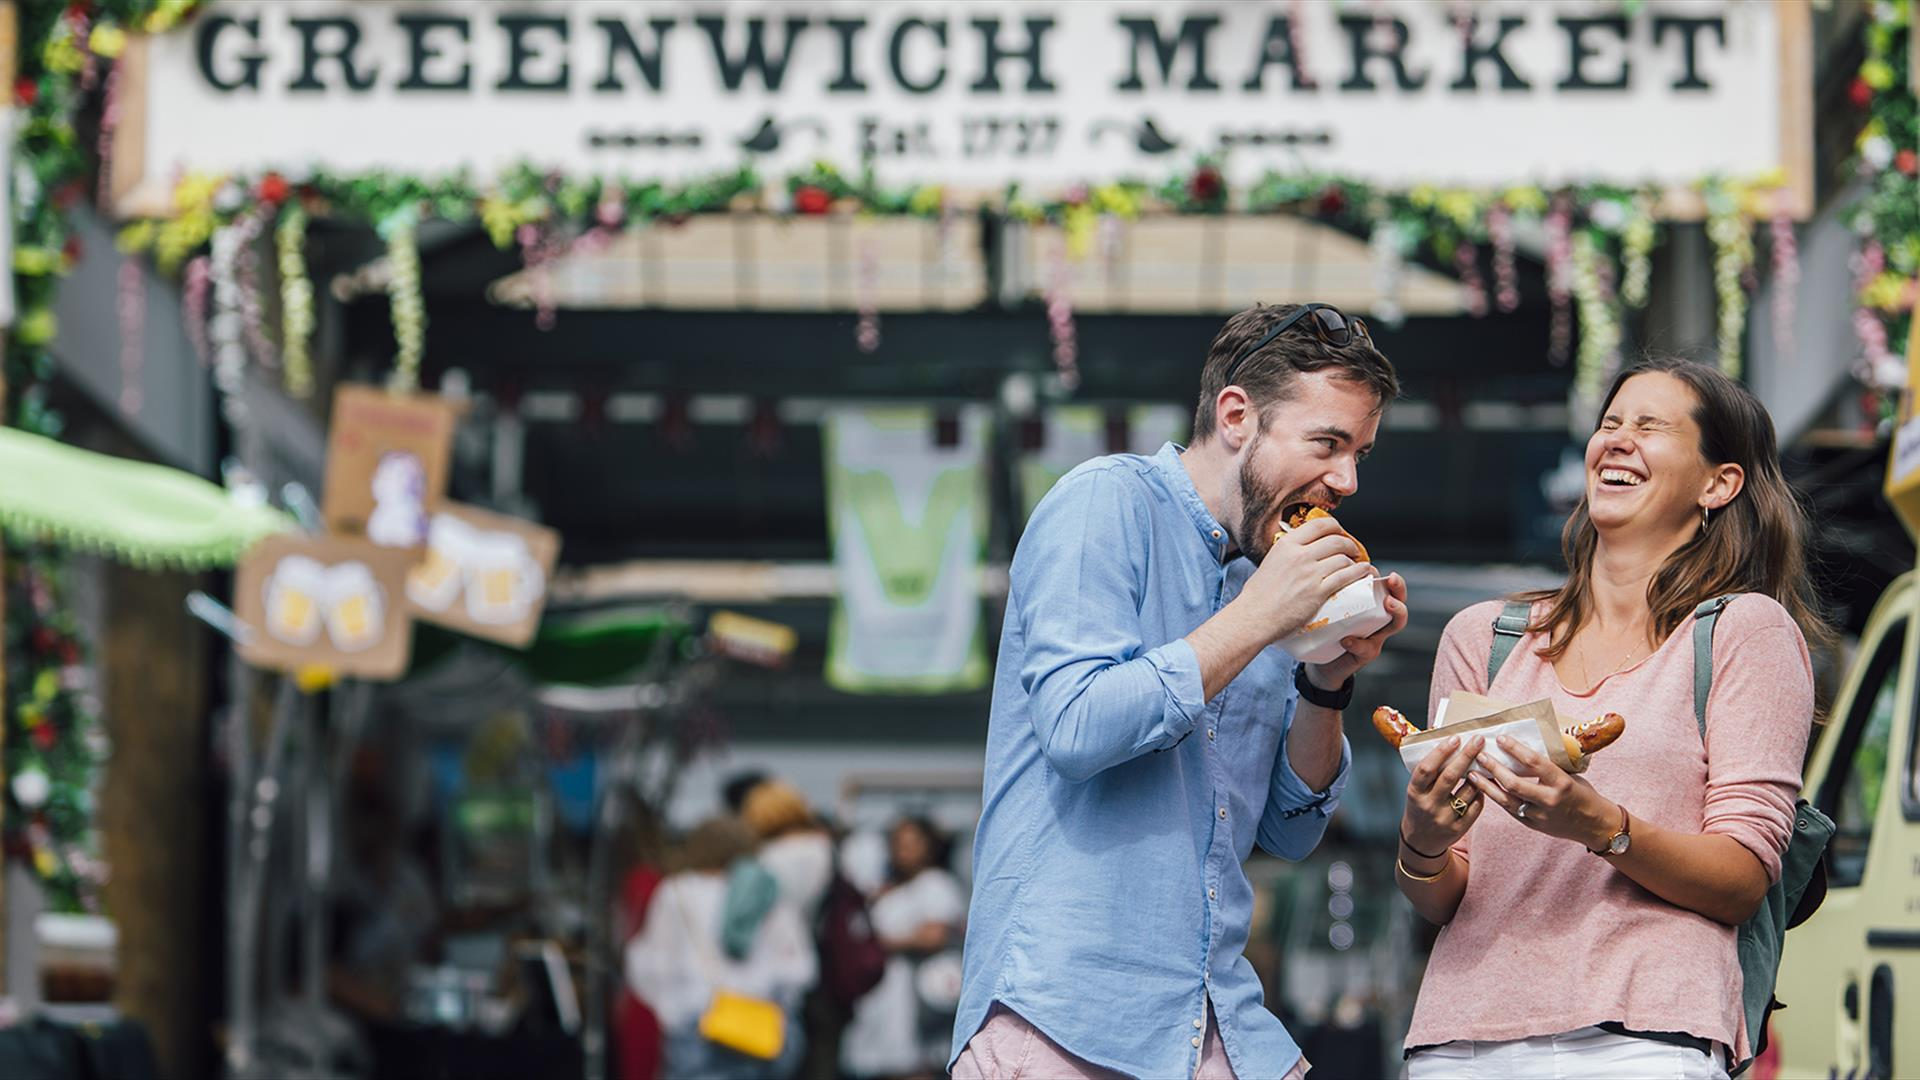 Visitors experiencing Greenwich Food Market